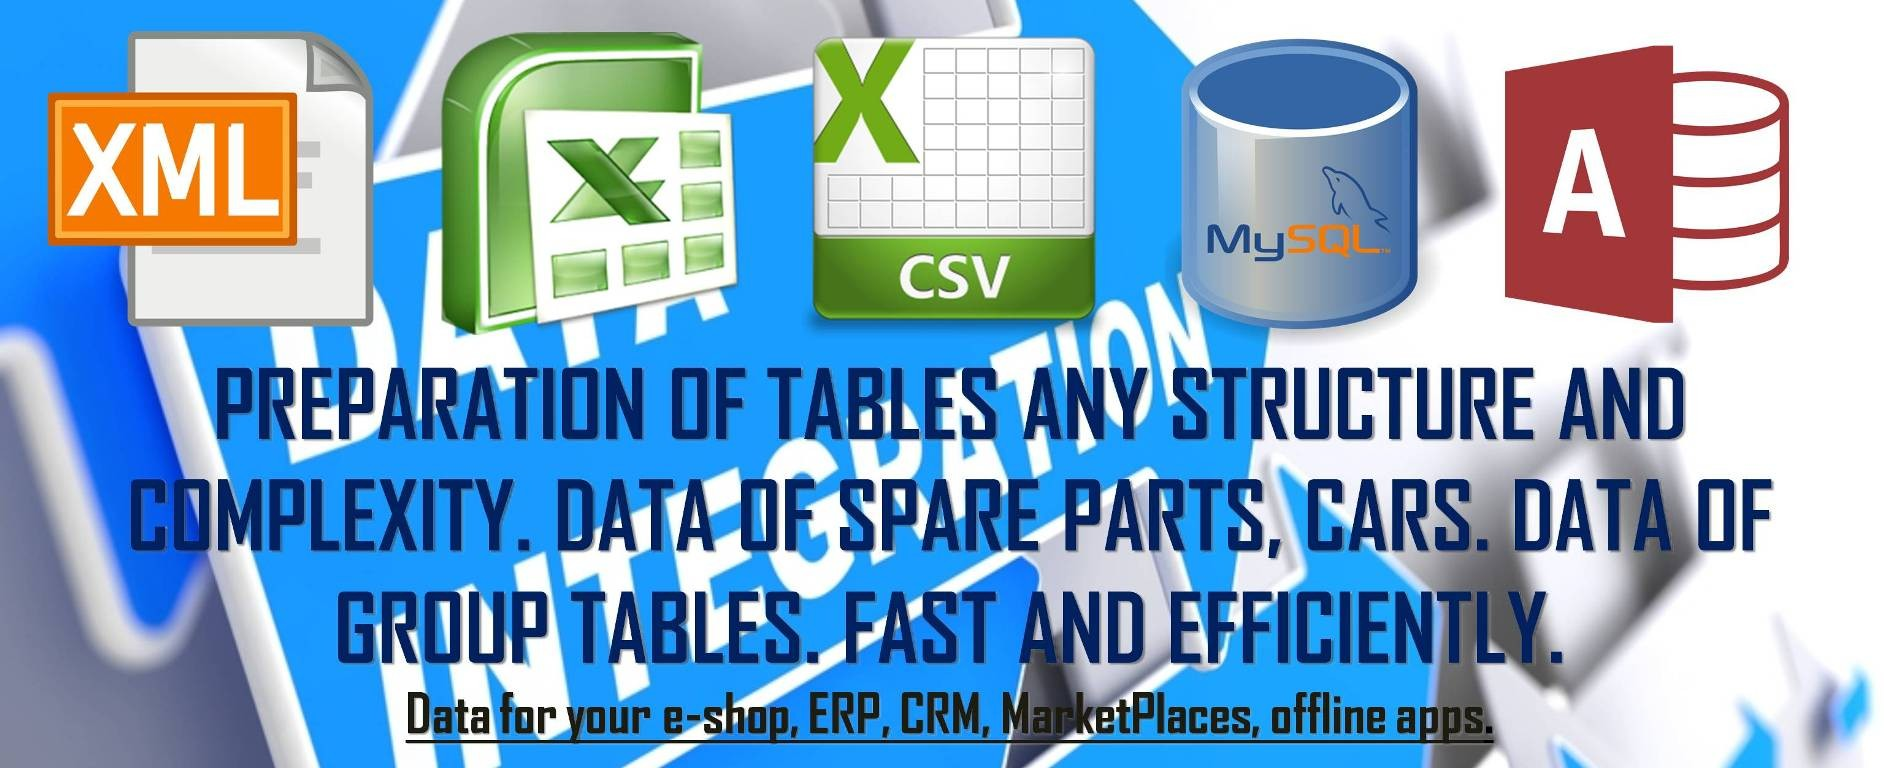 Preparation CSV/XLSX/XML - tables any structure